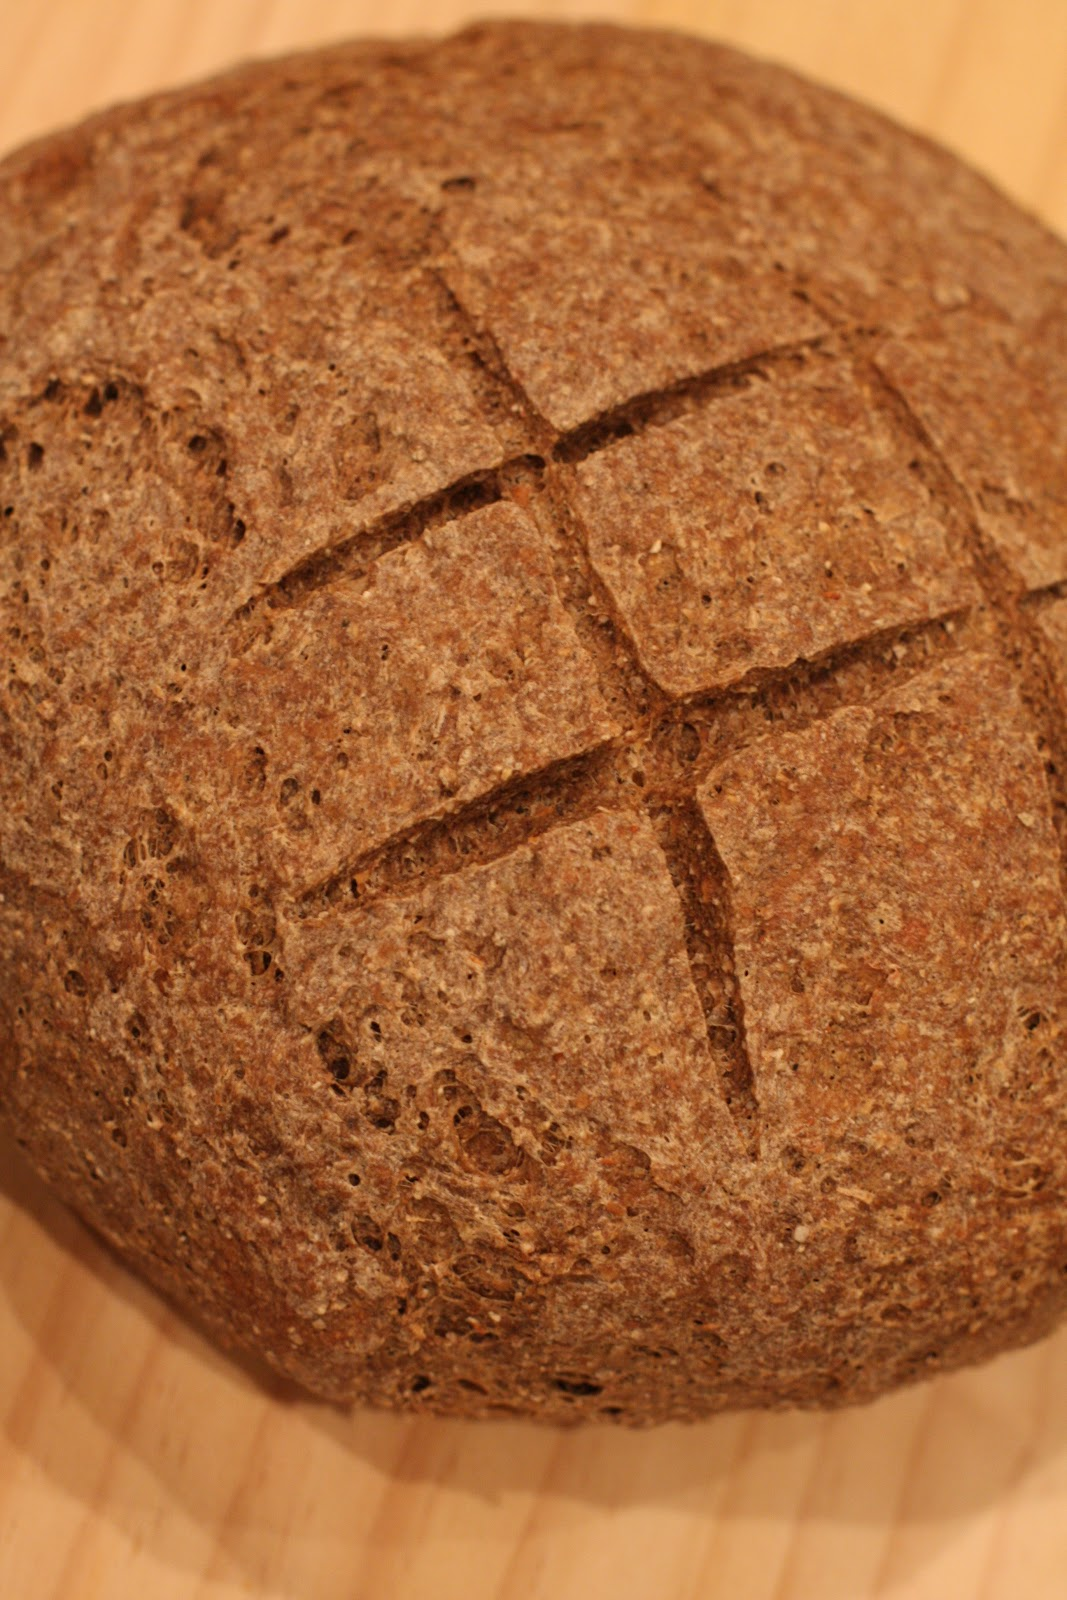 Nonesuch: Old-Fashioned Rye Bread